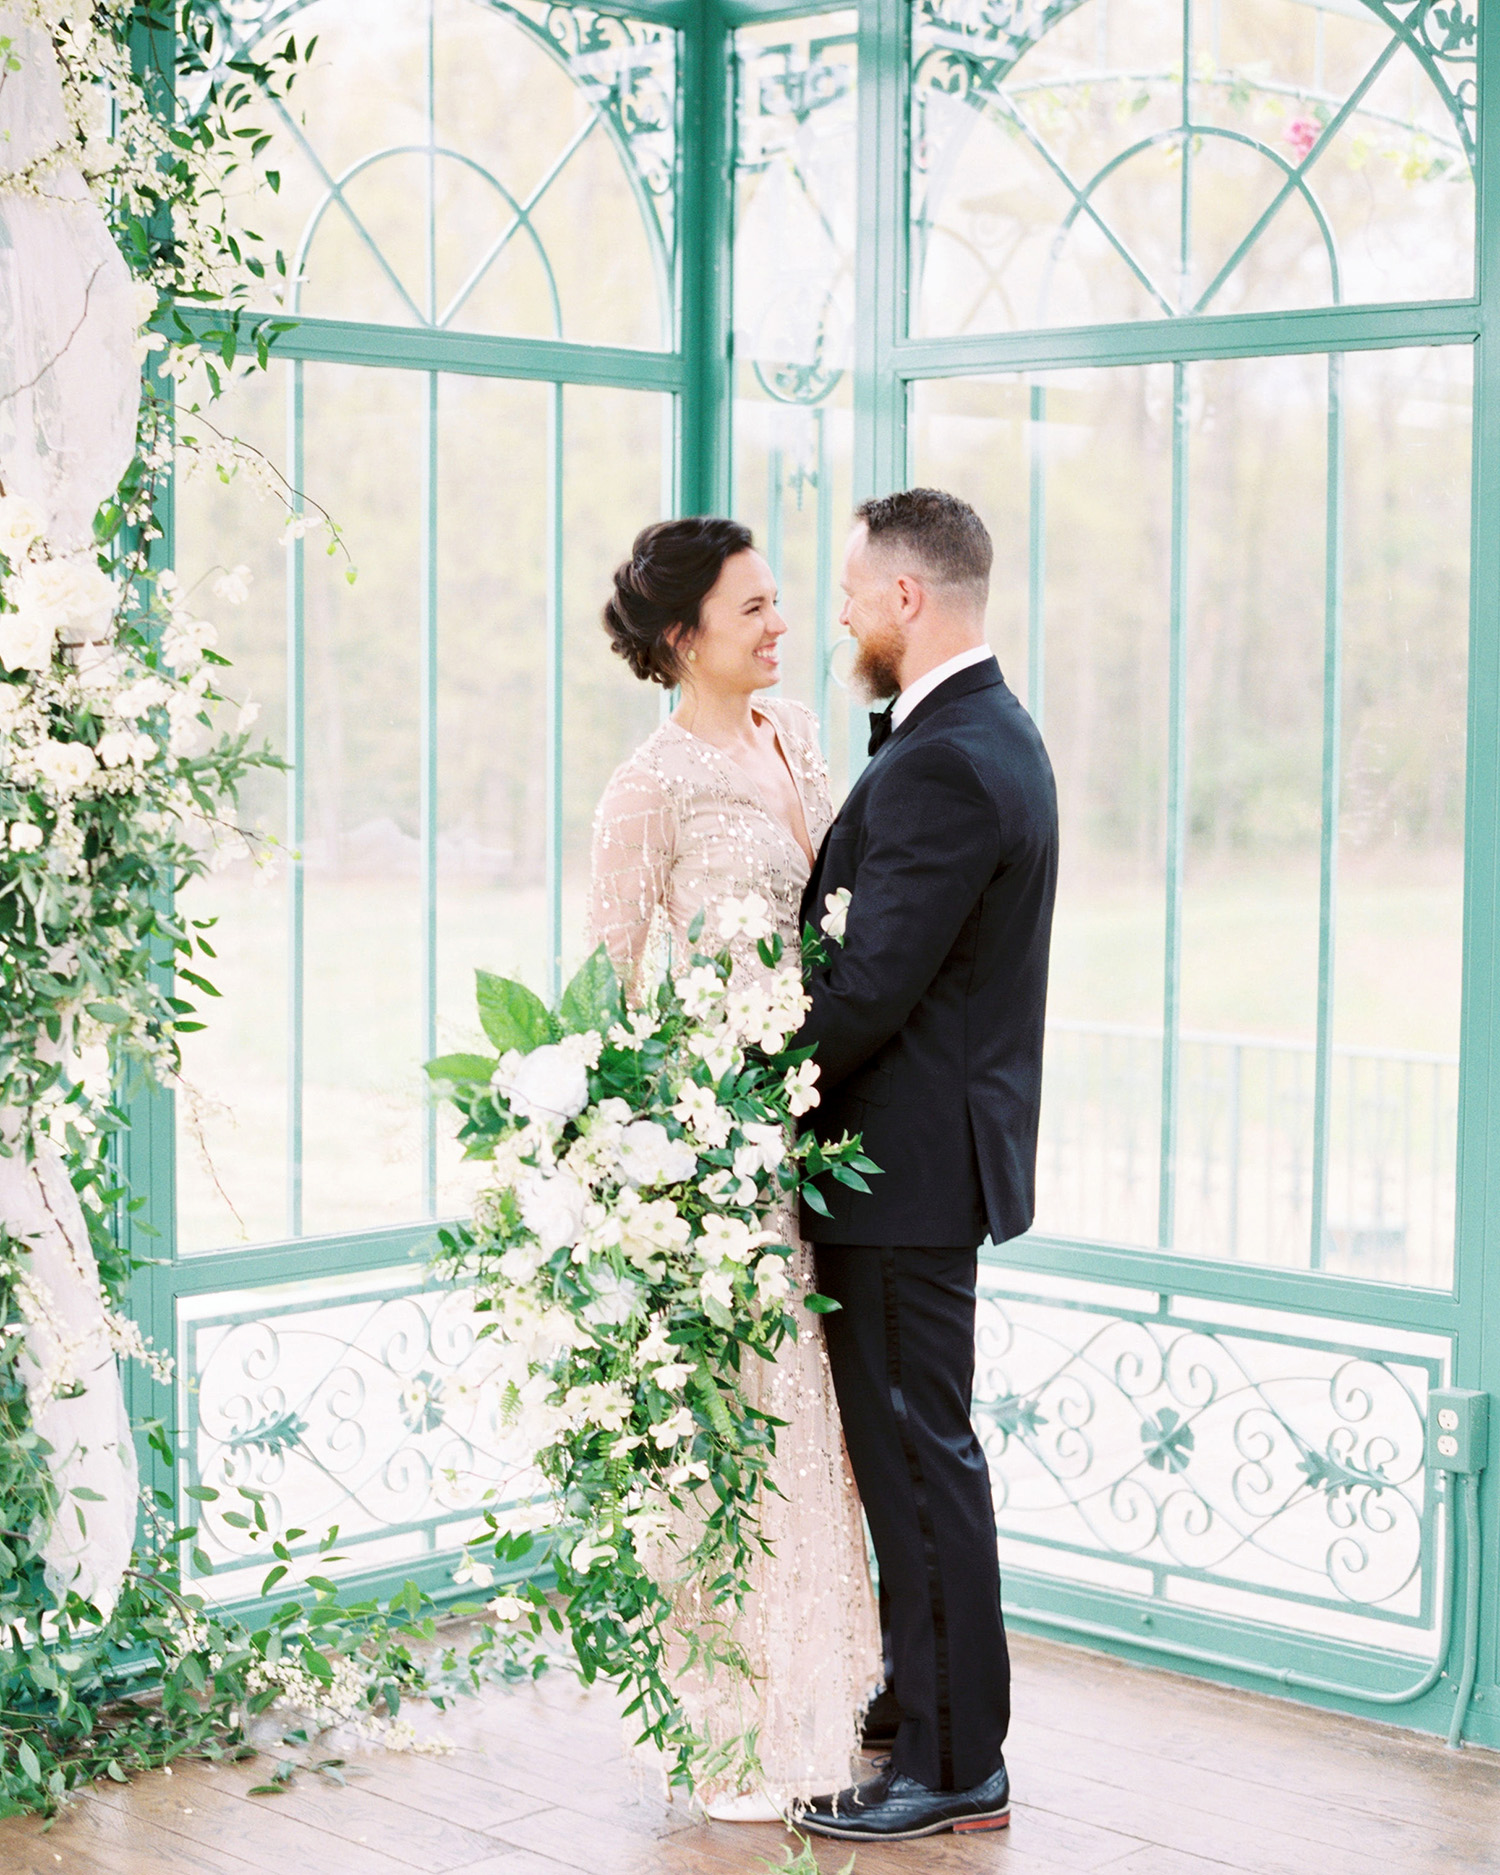 The Stars of This Virginia Couple's Romantic, Old-World Vow Renewal Were Their Children